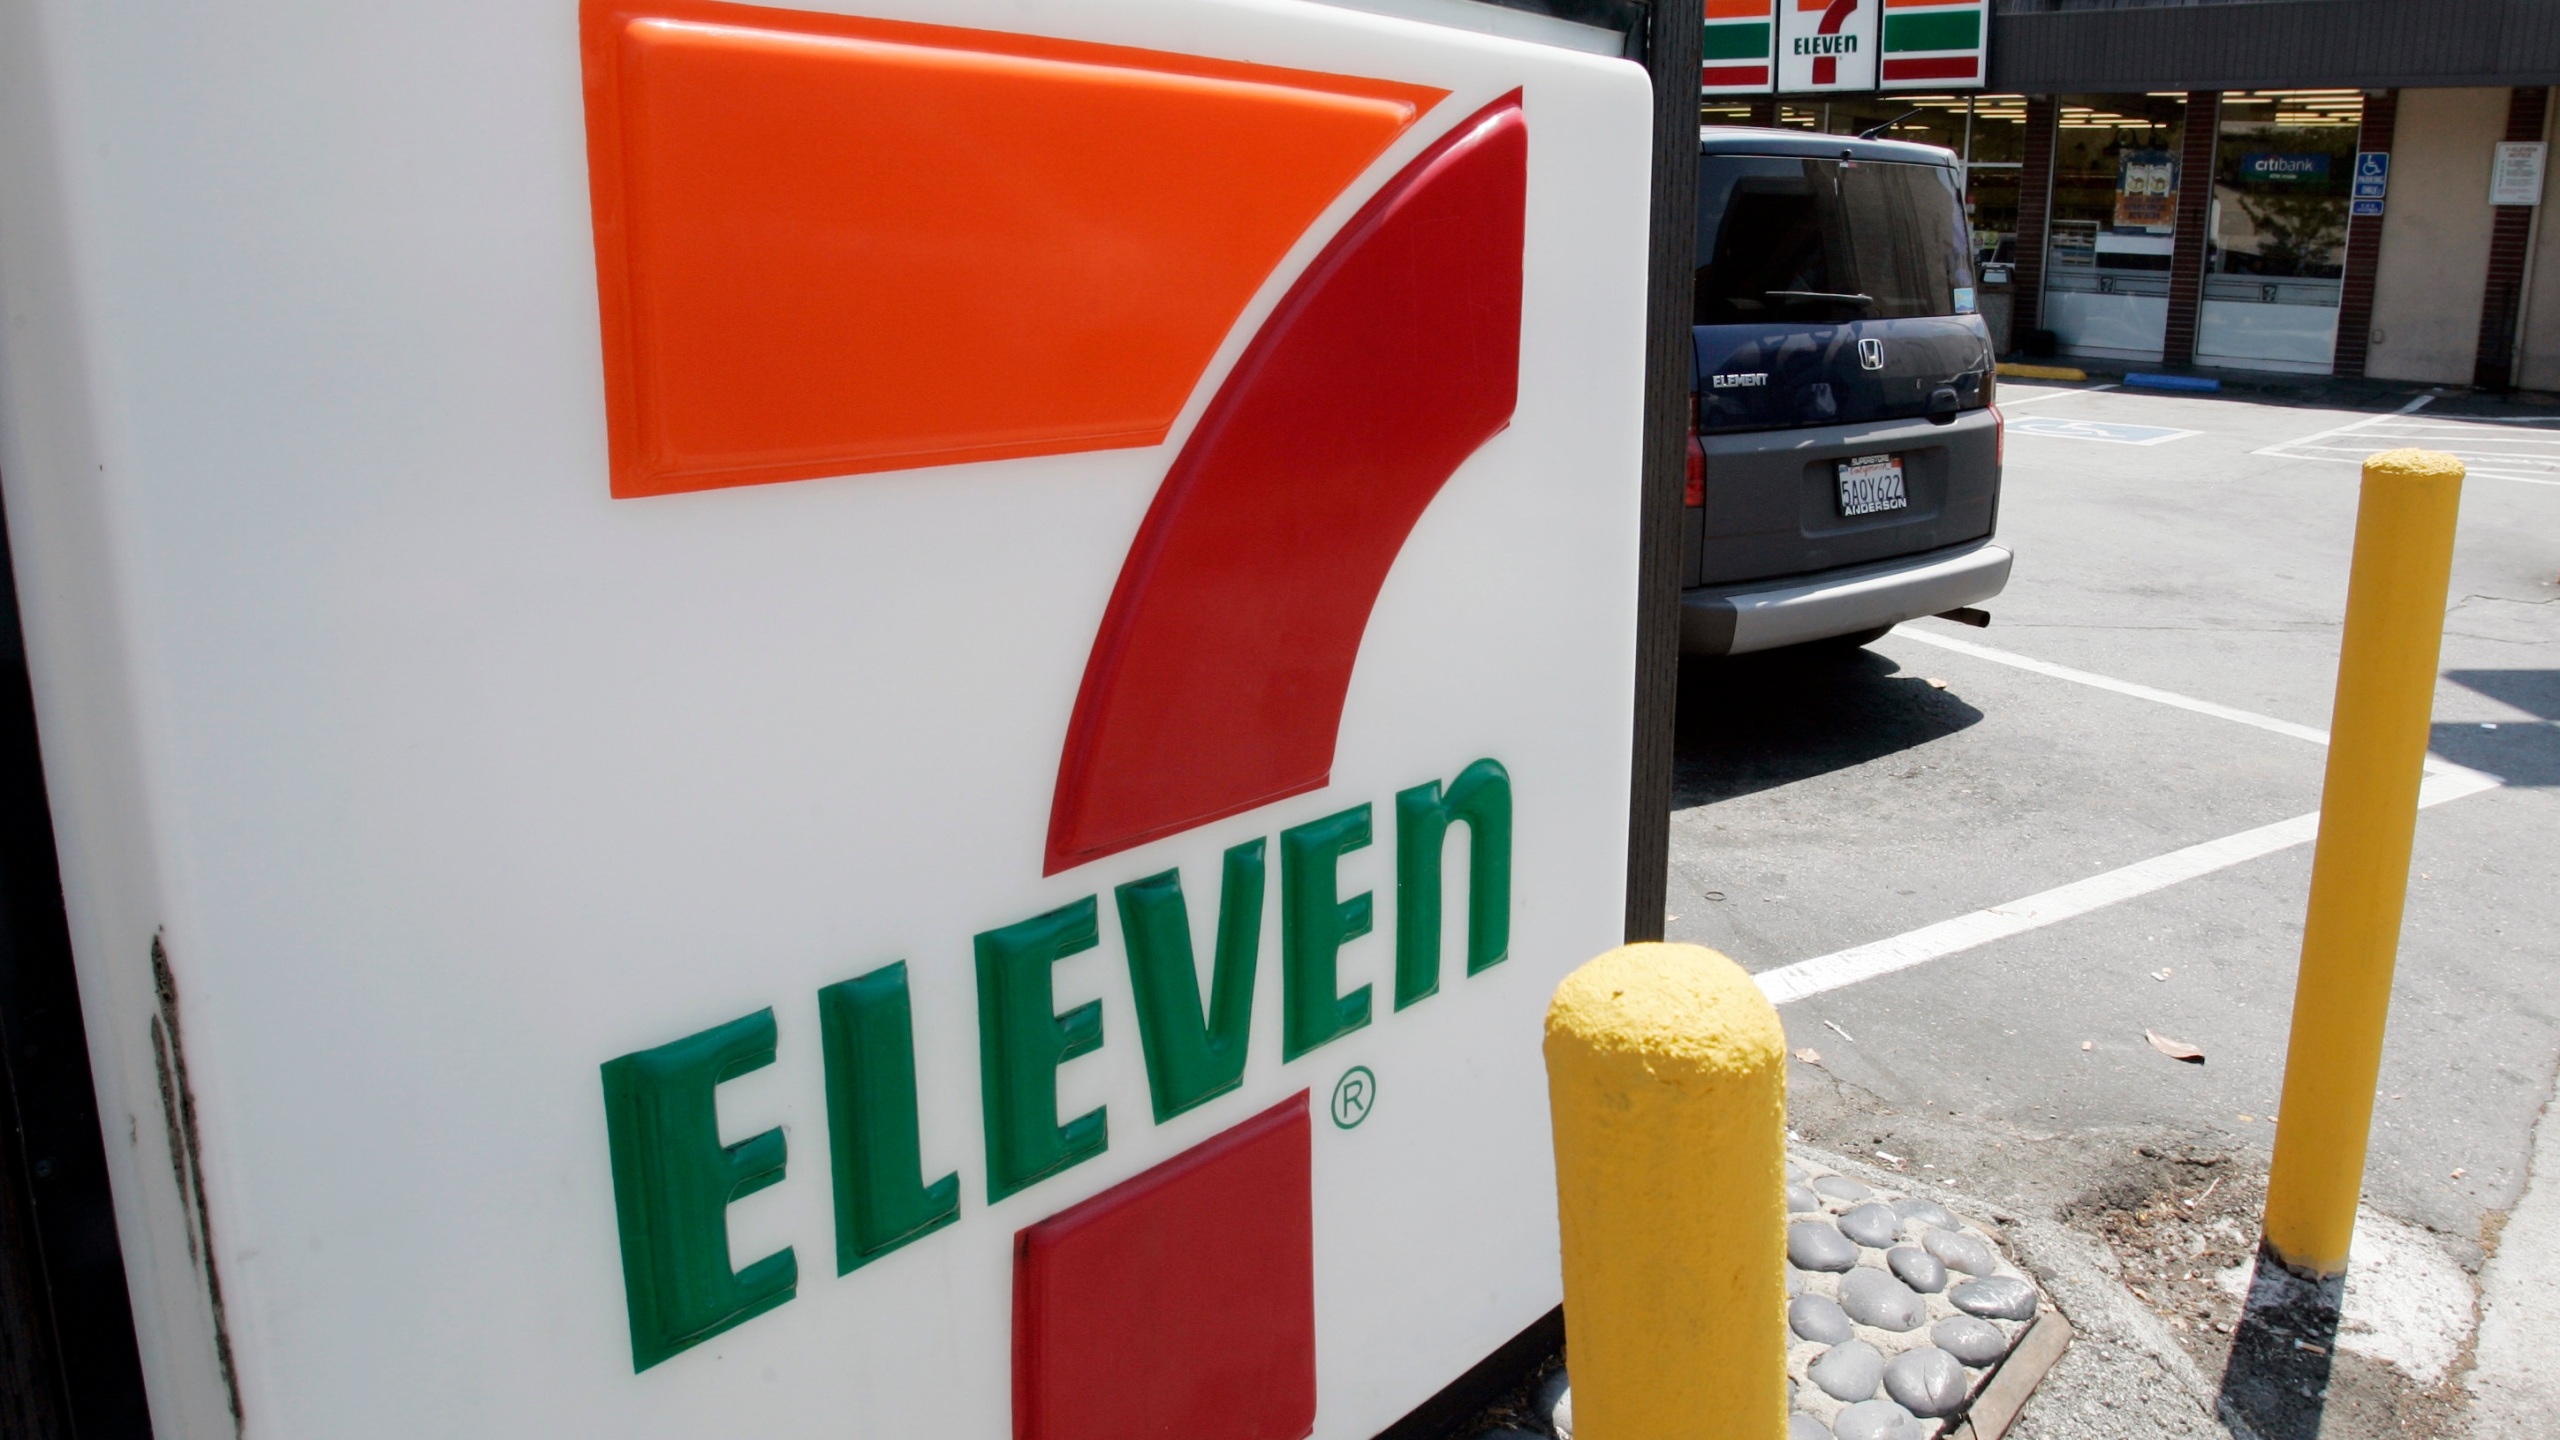 7-Eleven-Delivery_1561407232686